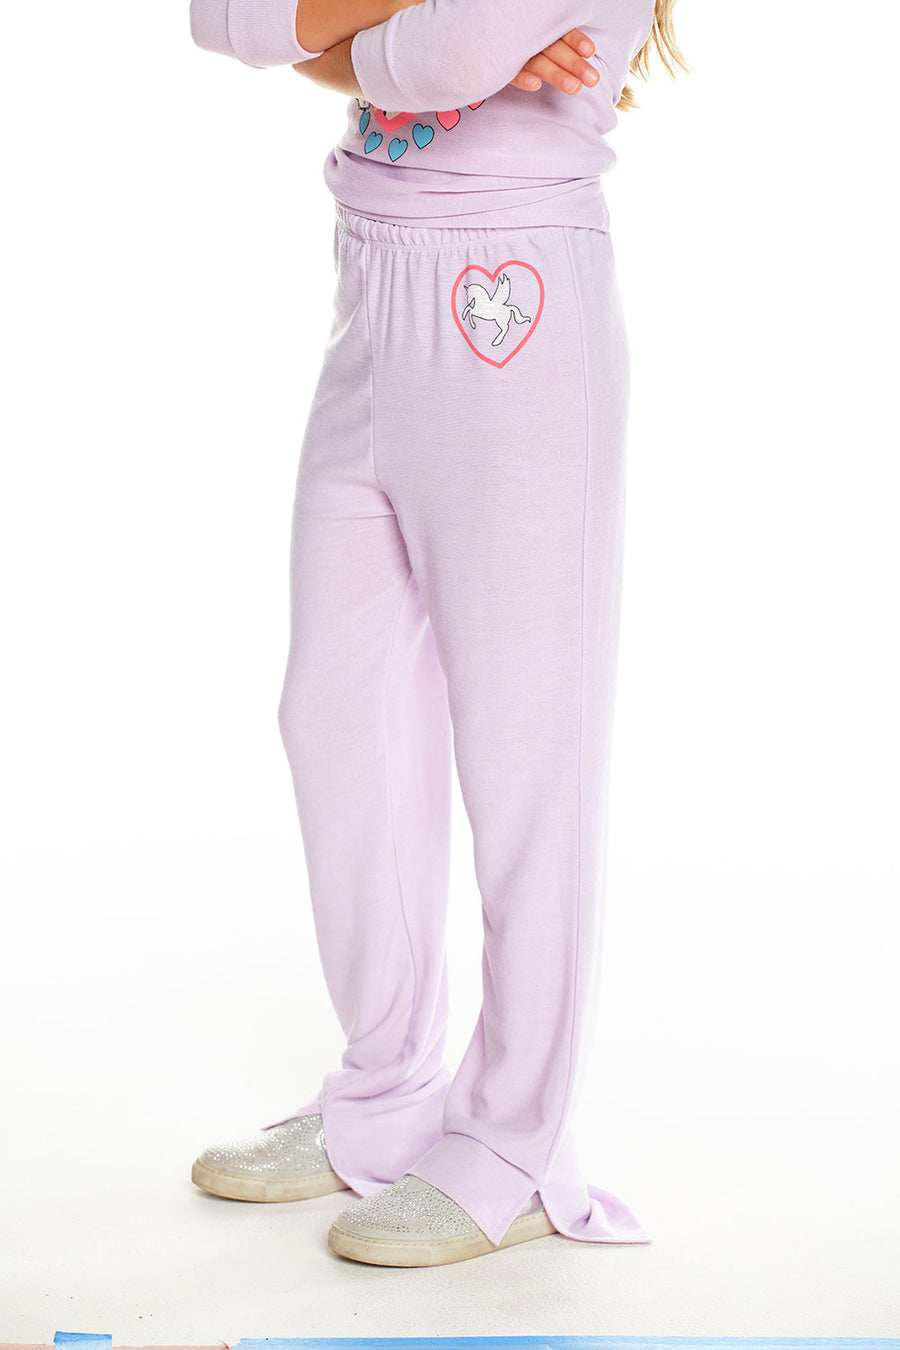 I Love Unicorns Pant, GIRLS, chaserbrand.com,chaser clothing,chaser apparel,chaser los angeles